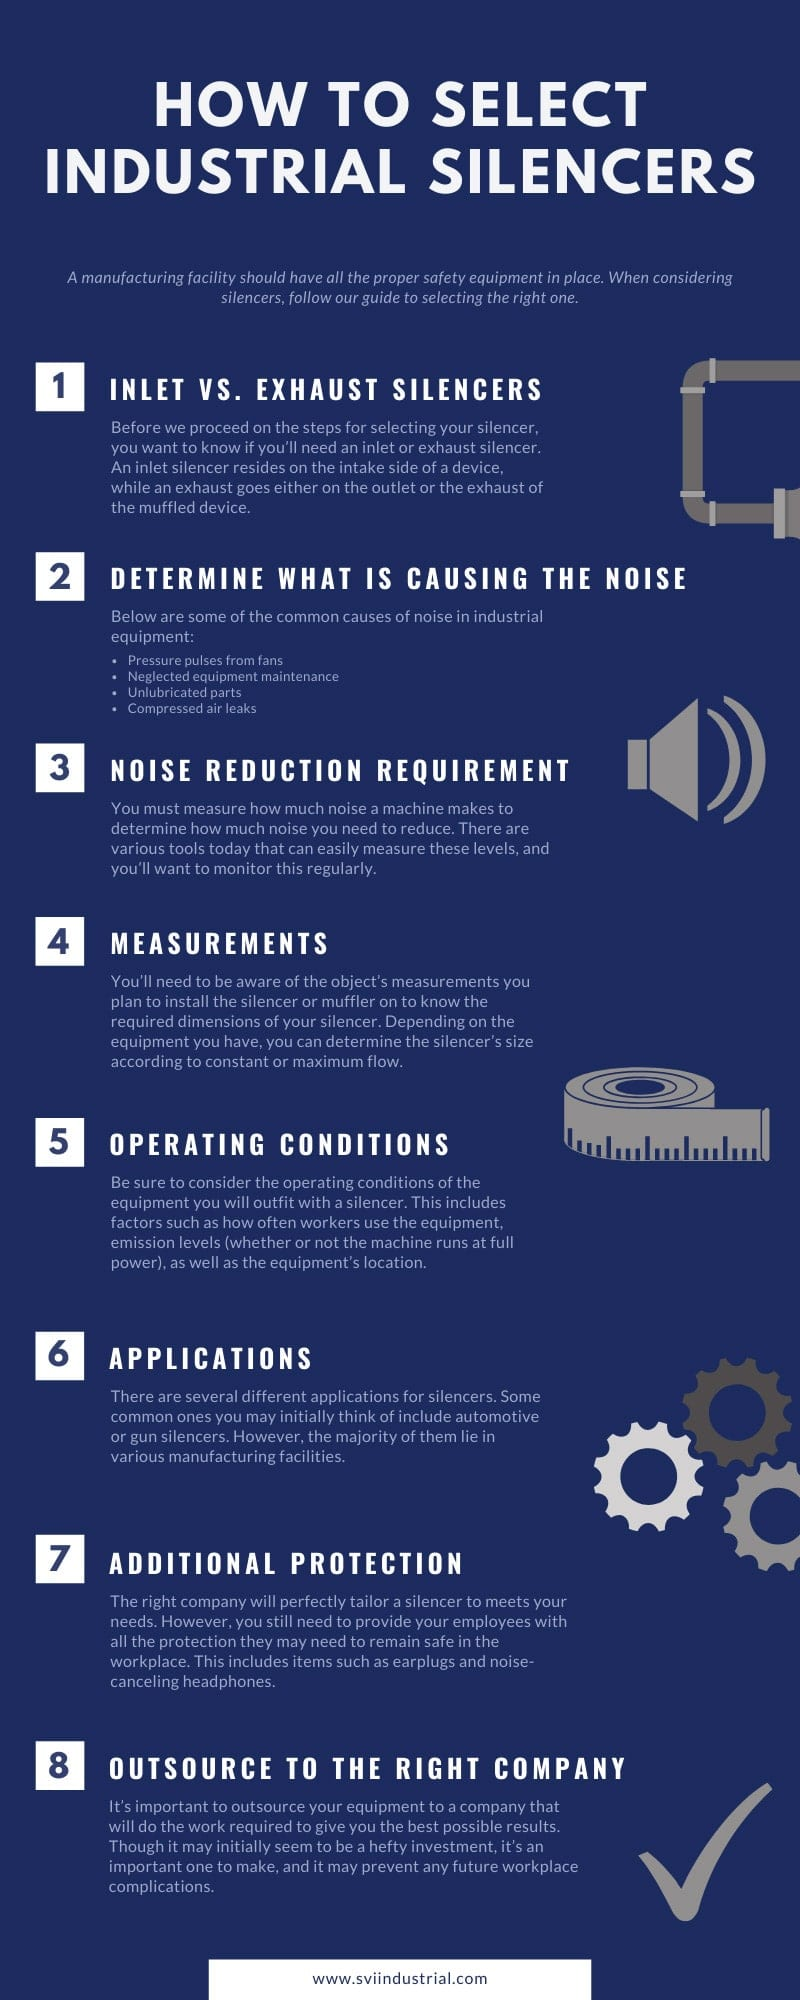 How to Select Industrial Silencers infographic